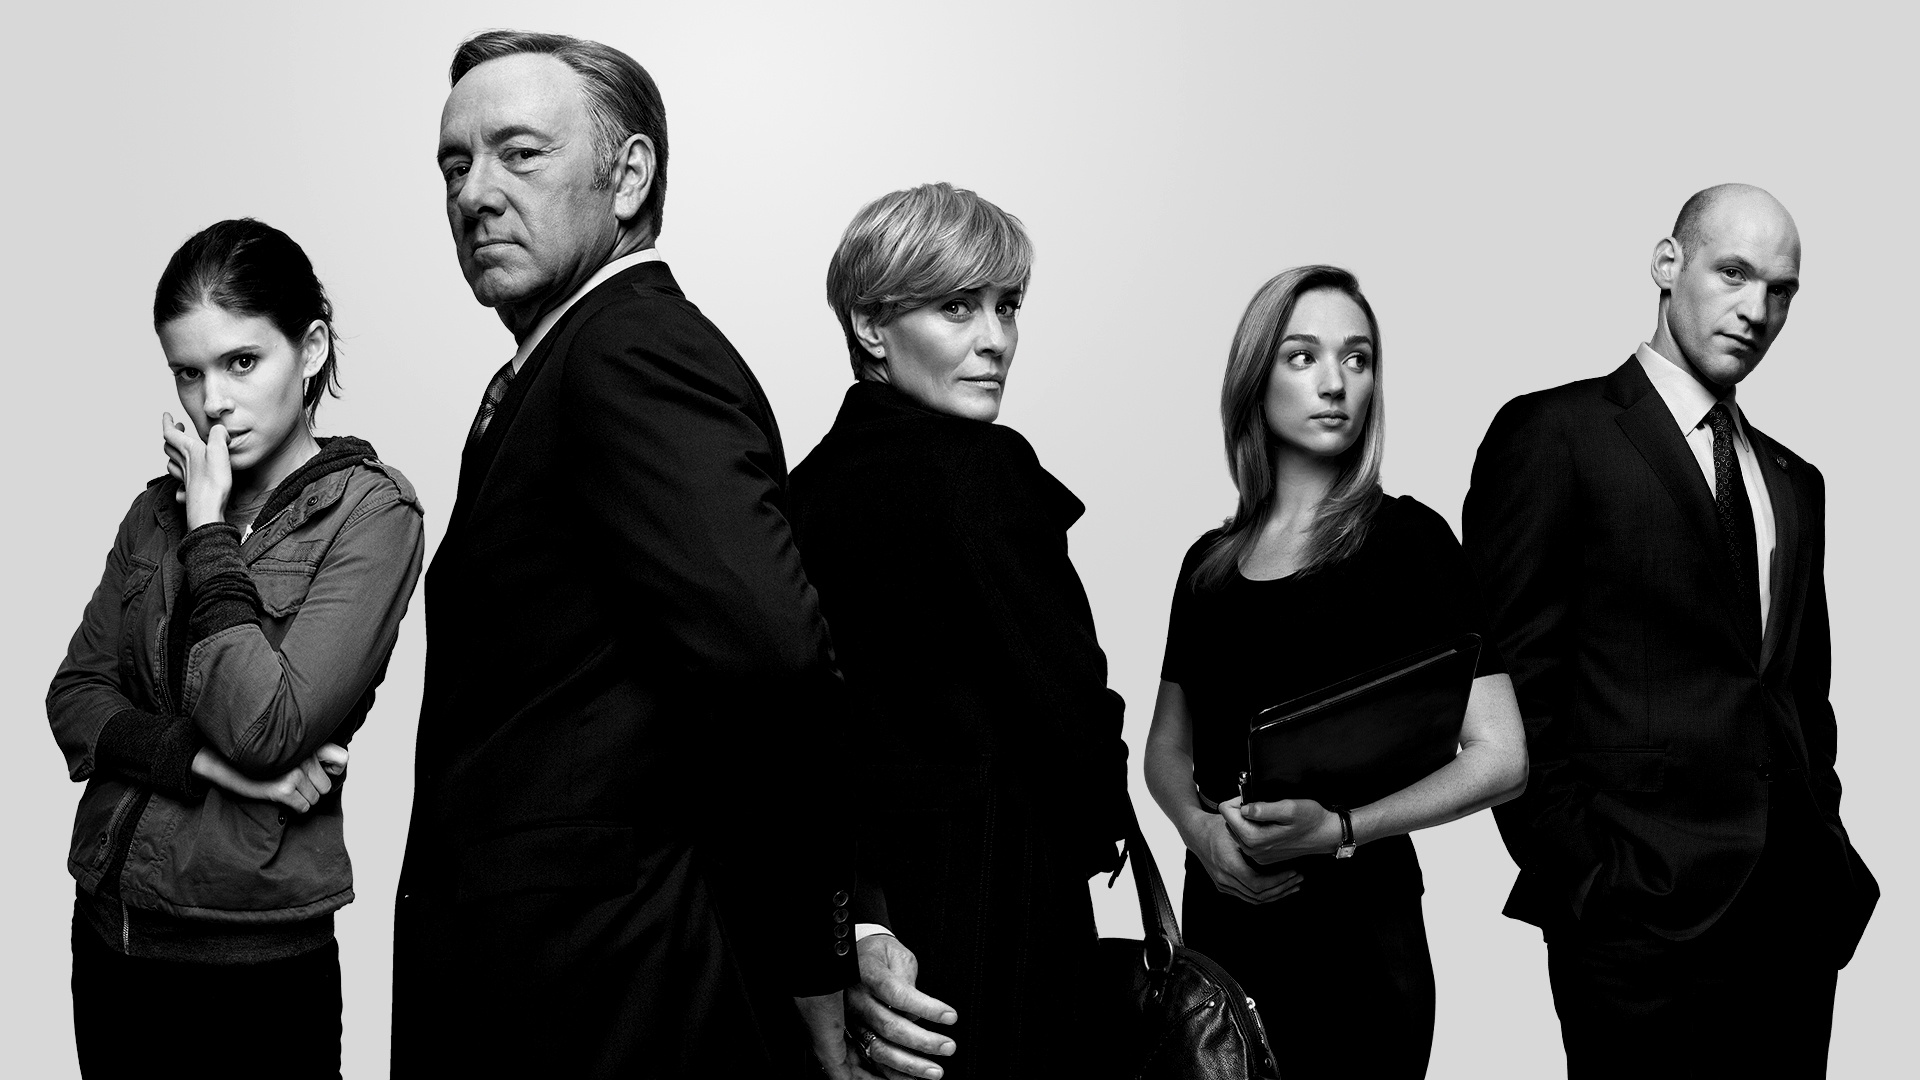 House Of Cards Season 2 Wallpaper Images - House Of Cards Season 1 , HD Wallpaper & Backgrounds